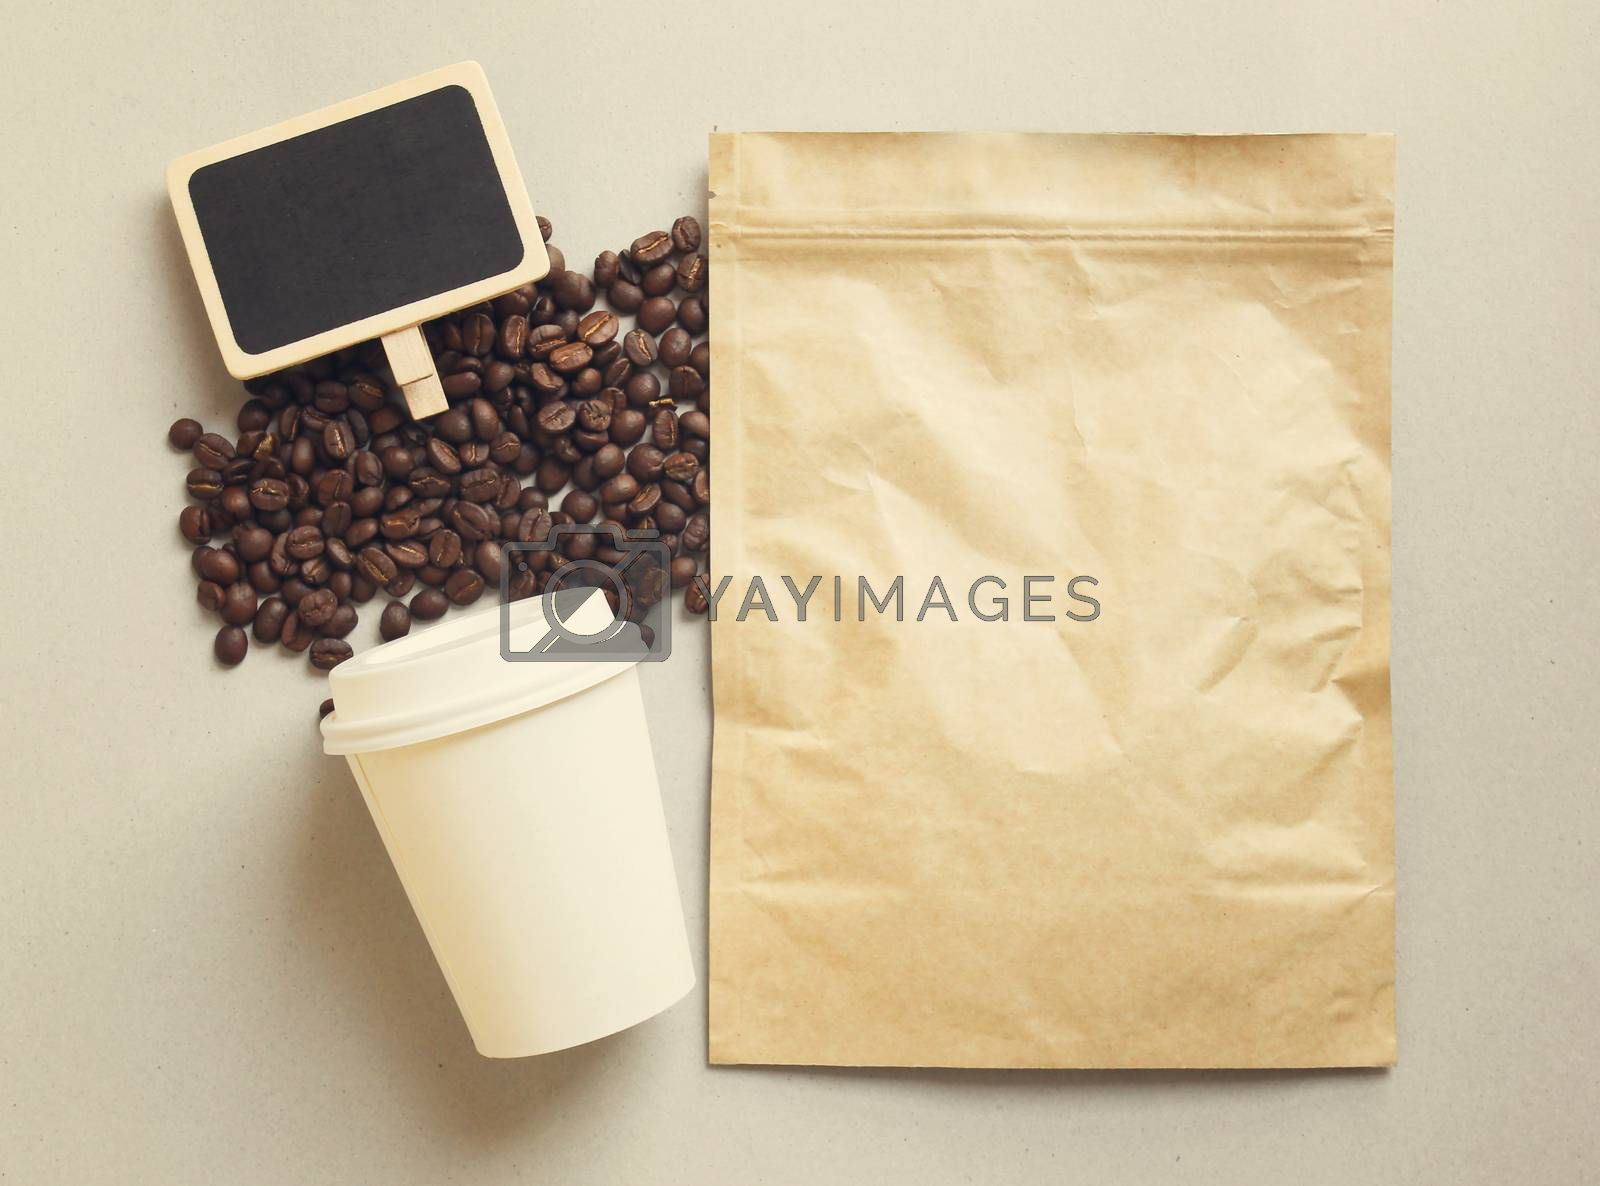 Bag of coffee and blank blackboard with paper cup, retro filter effect